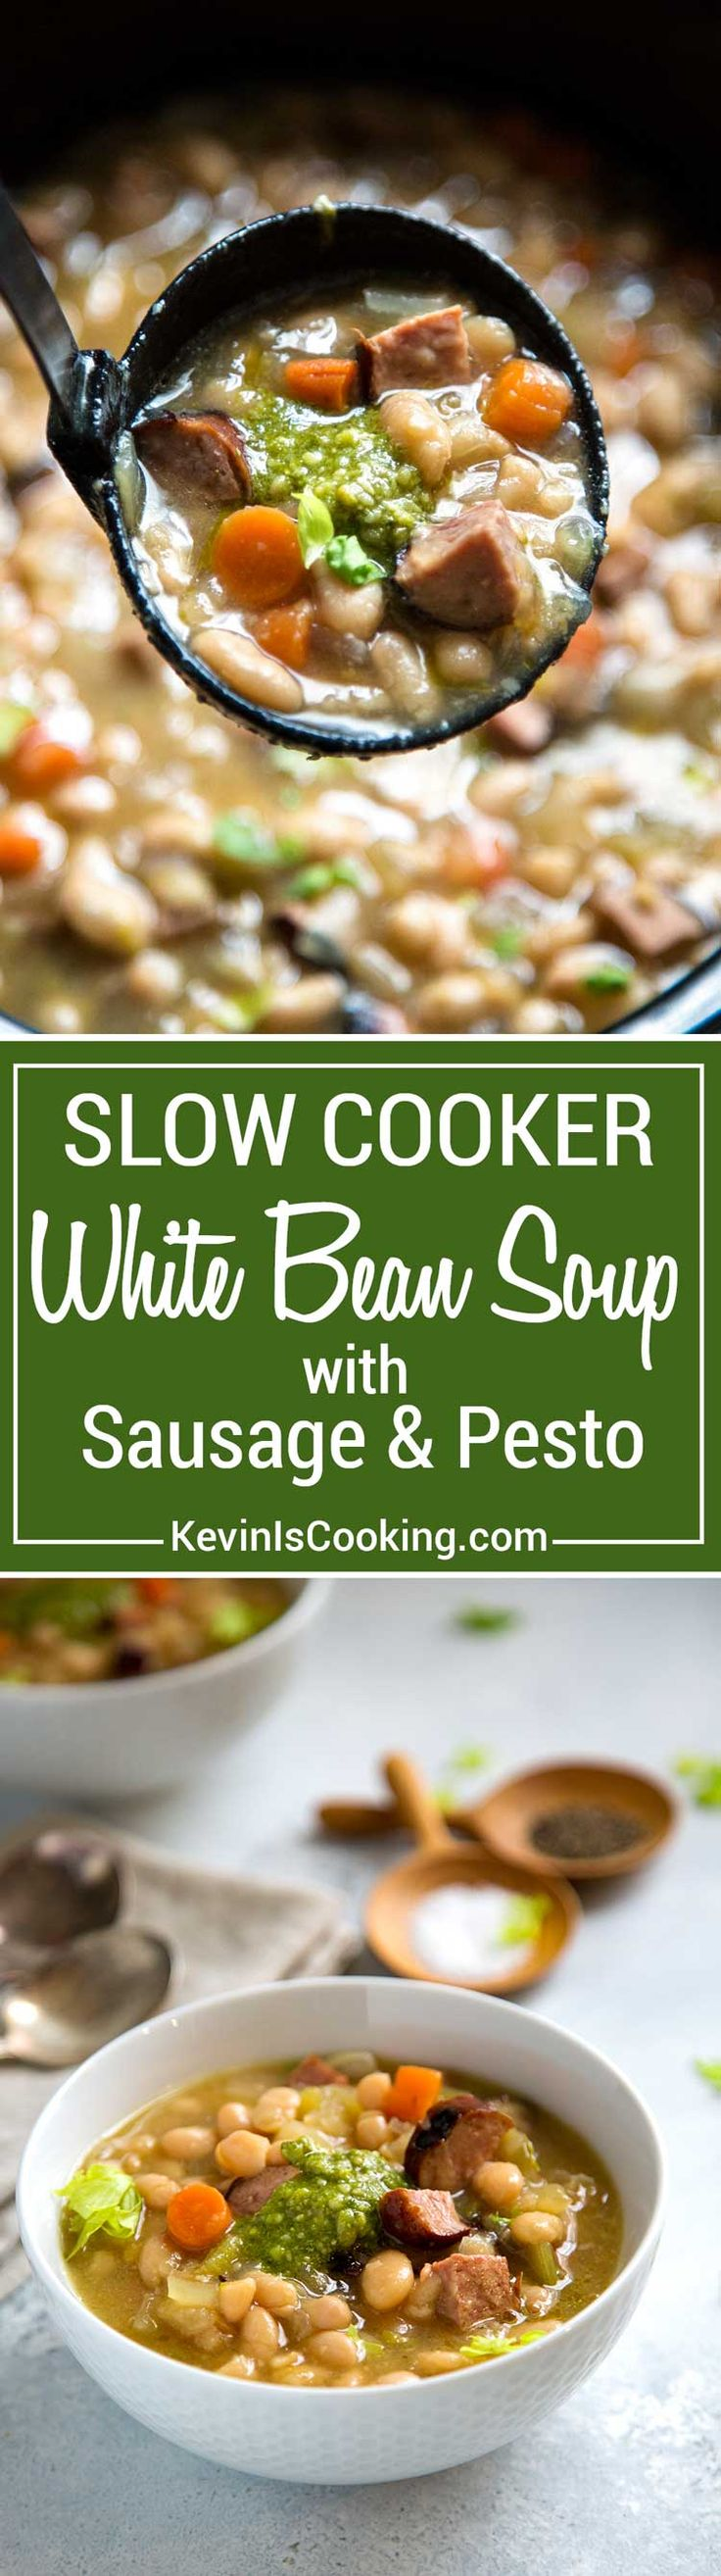 This Slow Cooker White Bean Soup has added beef kielbasa sausage for a heartier meal. Grilled or pan seared for that added caramelization flavor, plus a touch of fresh pesto tops it all before serving. This totally makes it!